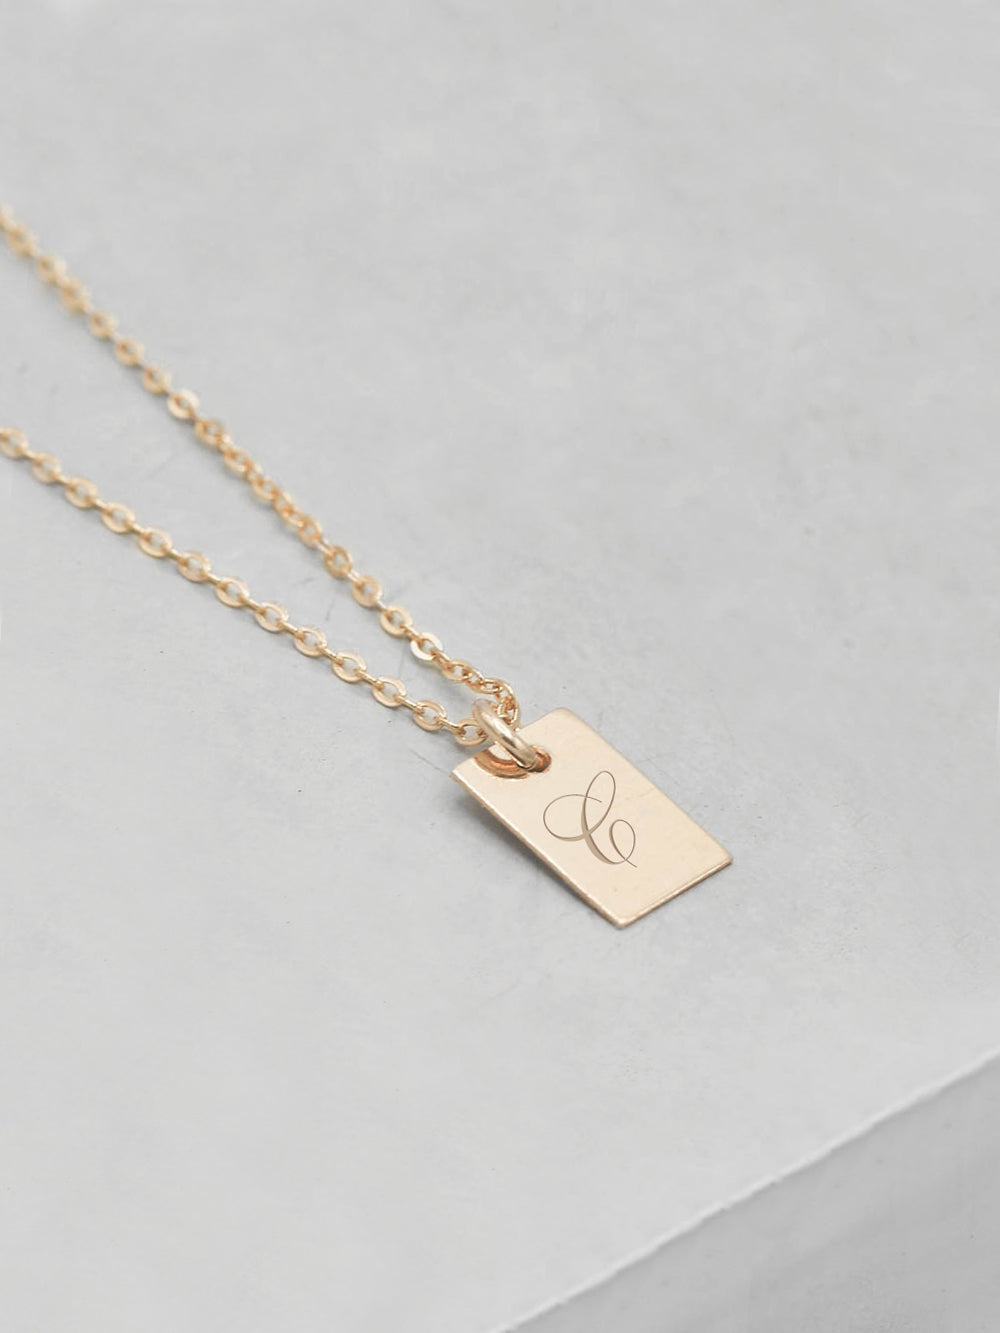 Engraved Mini Tag Necklace